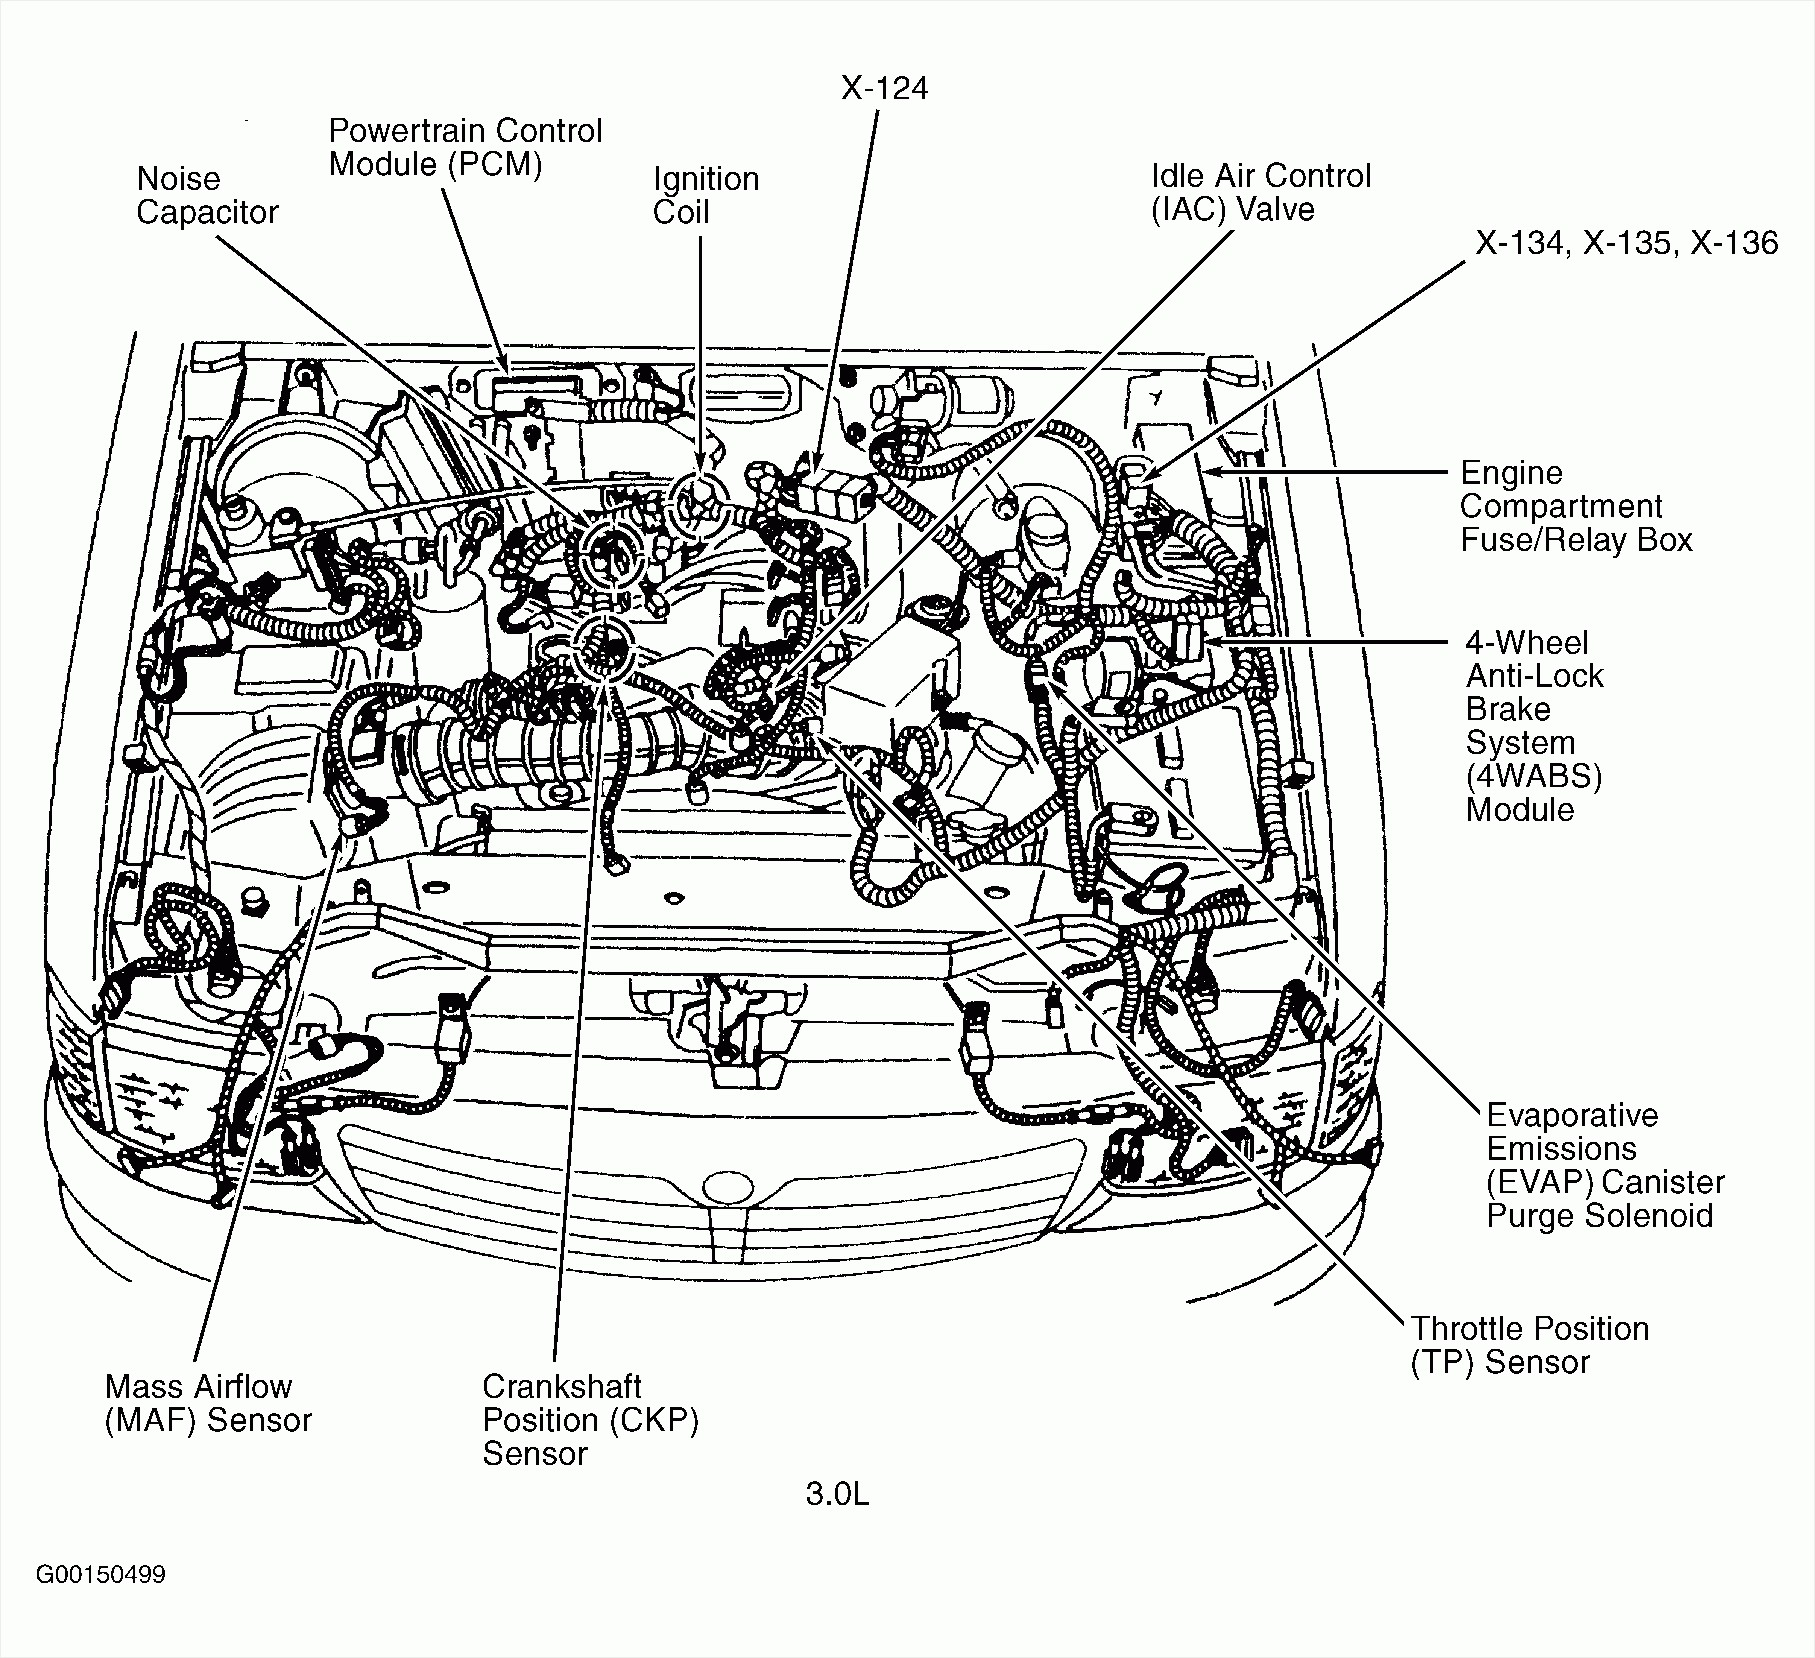 hight resolution of mazda engine diagram wiring diagrams scematic 1996 plymouth breeze engine diagram 2001 mazda 626 engine diagram